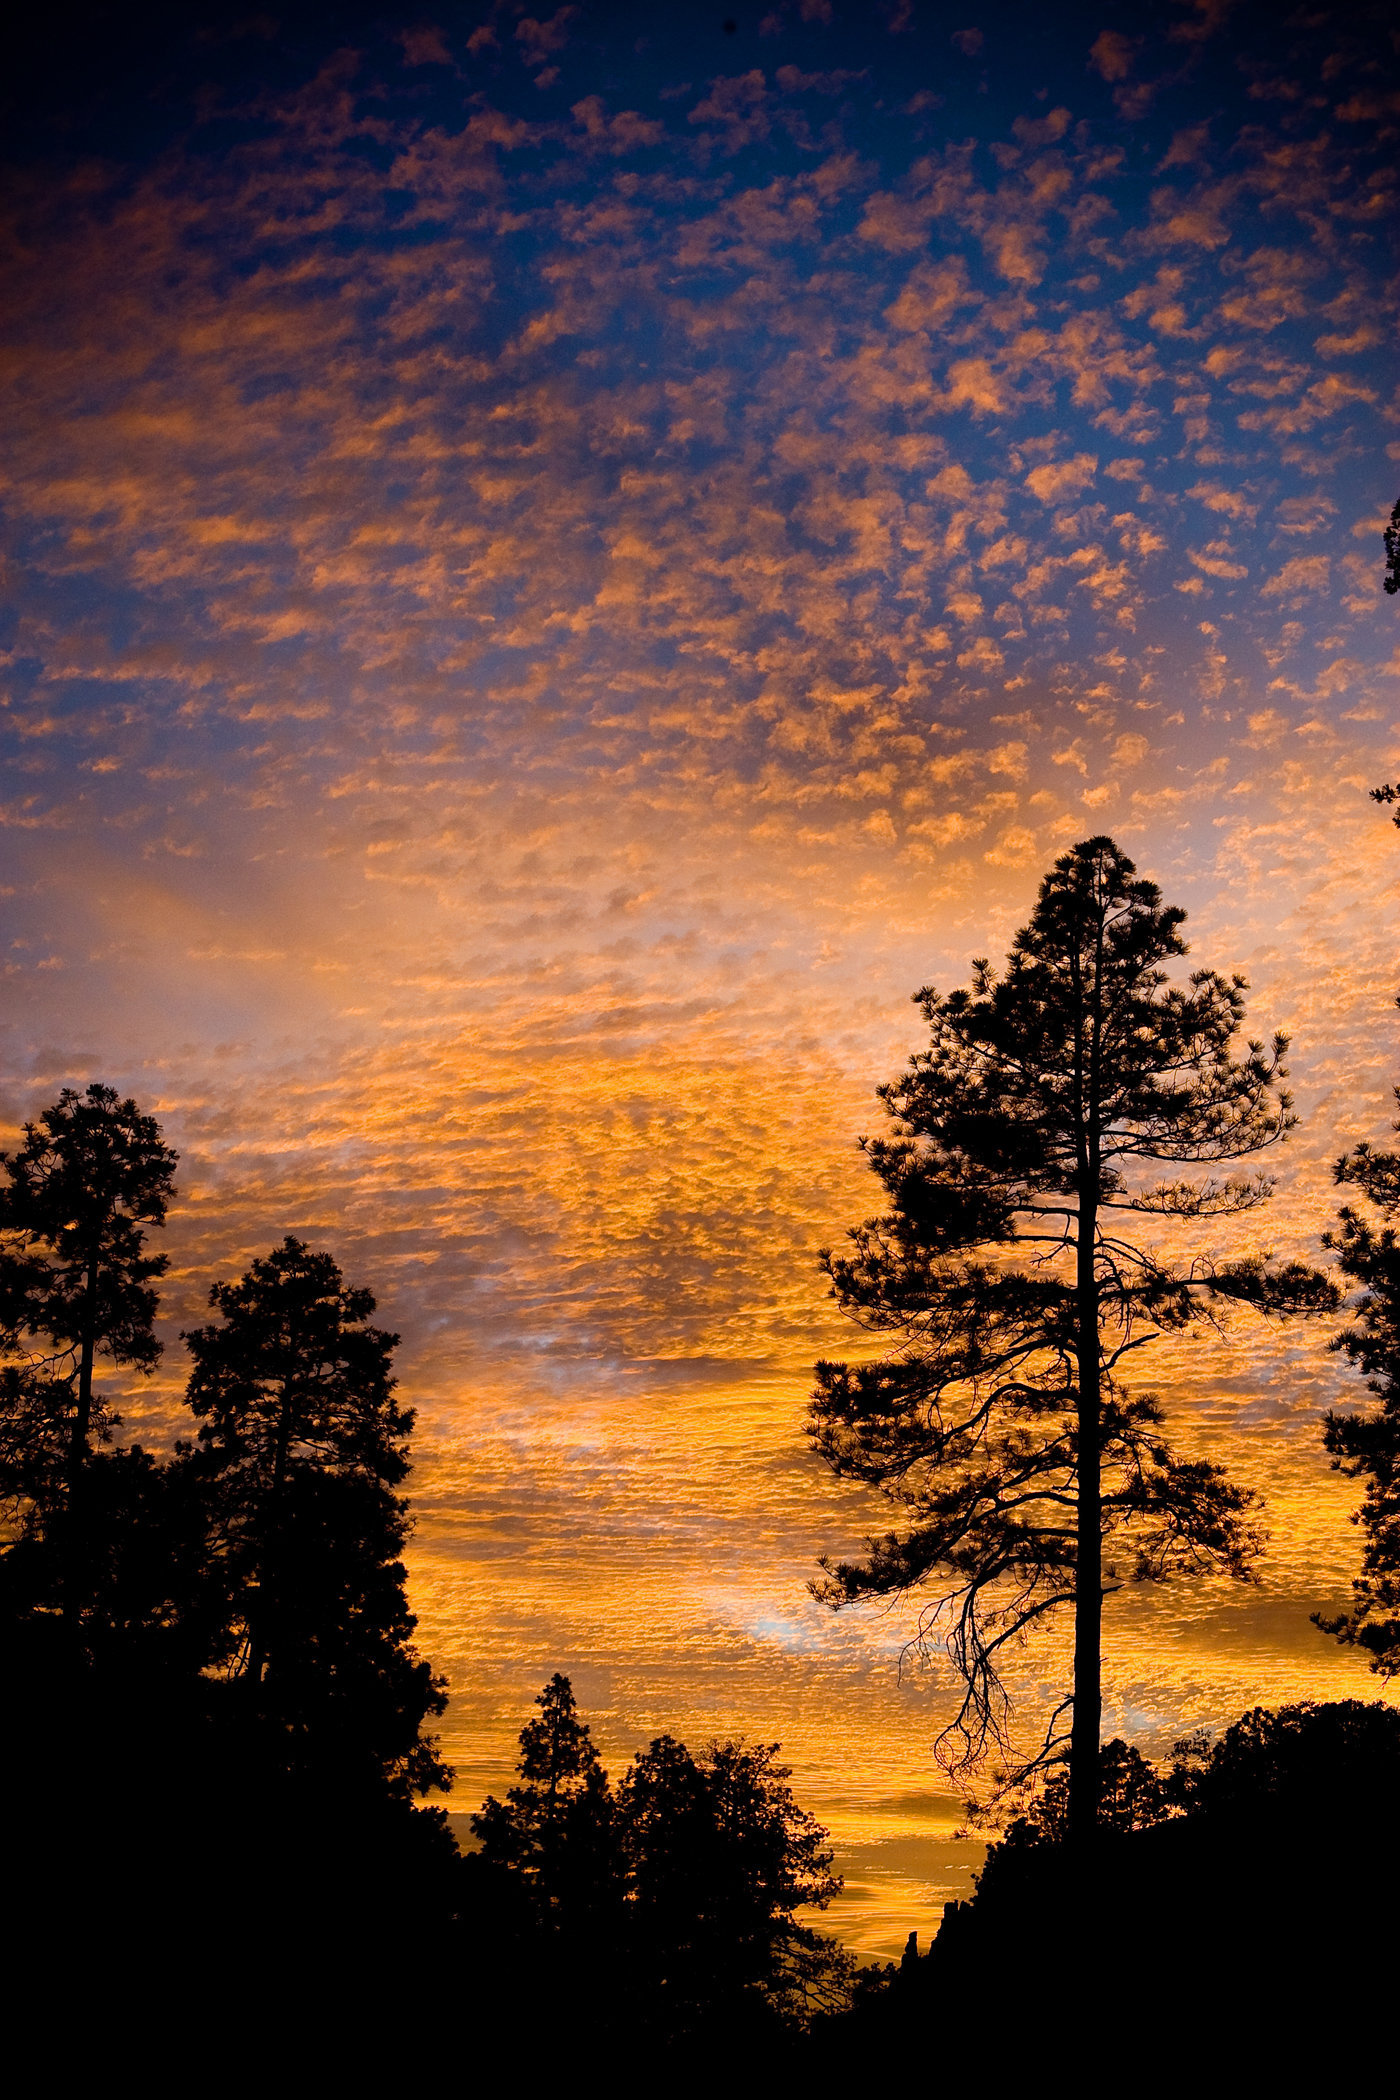 Mt. Lemmon Sunset